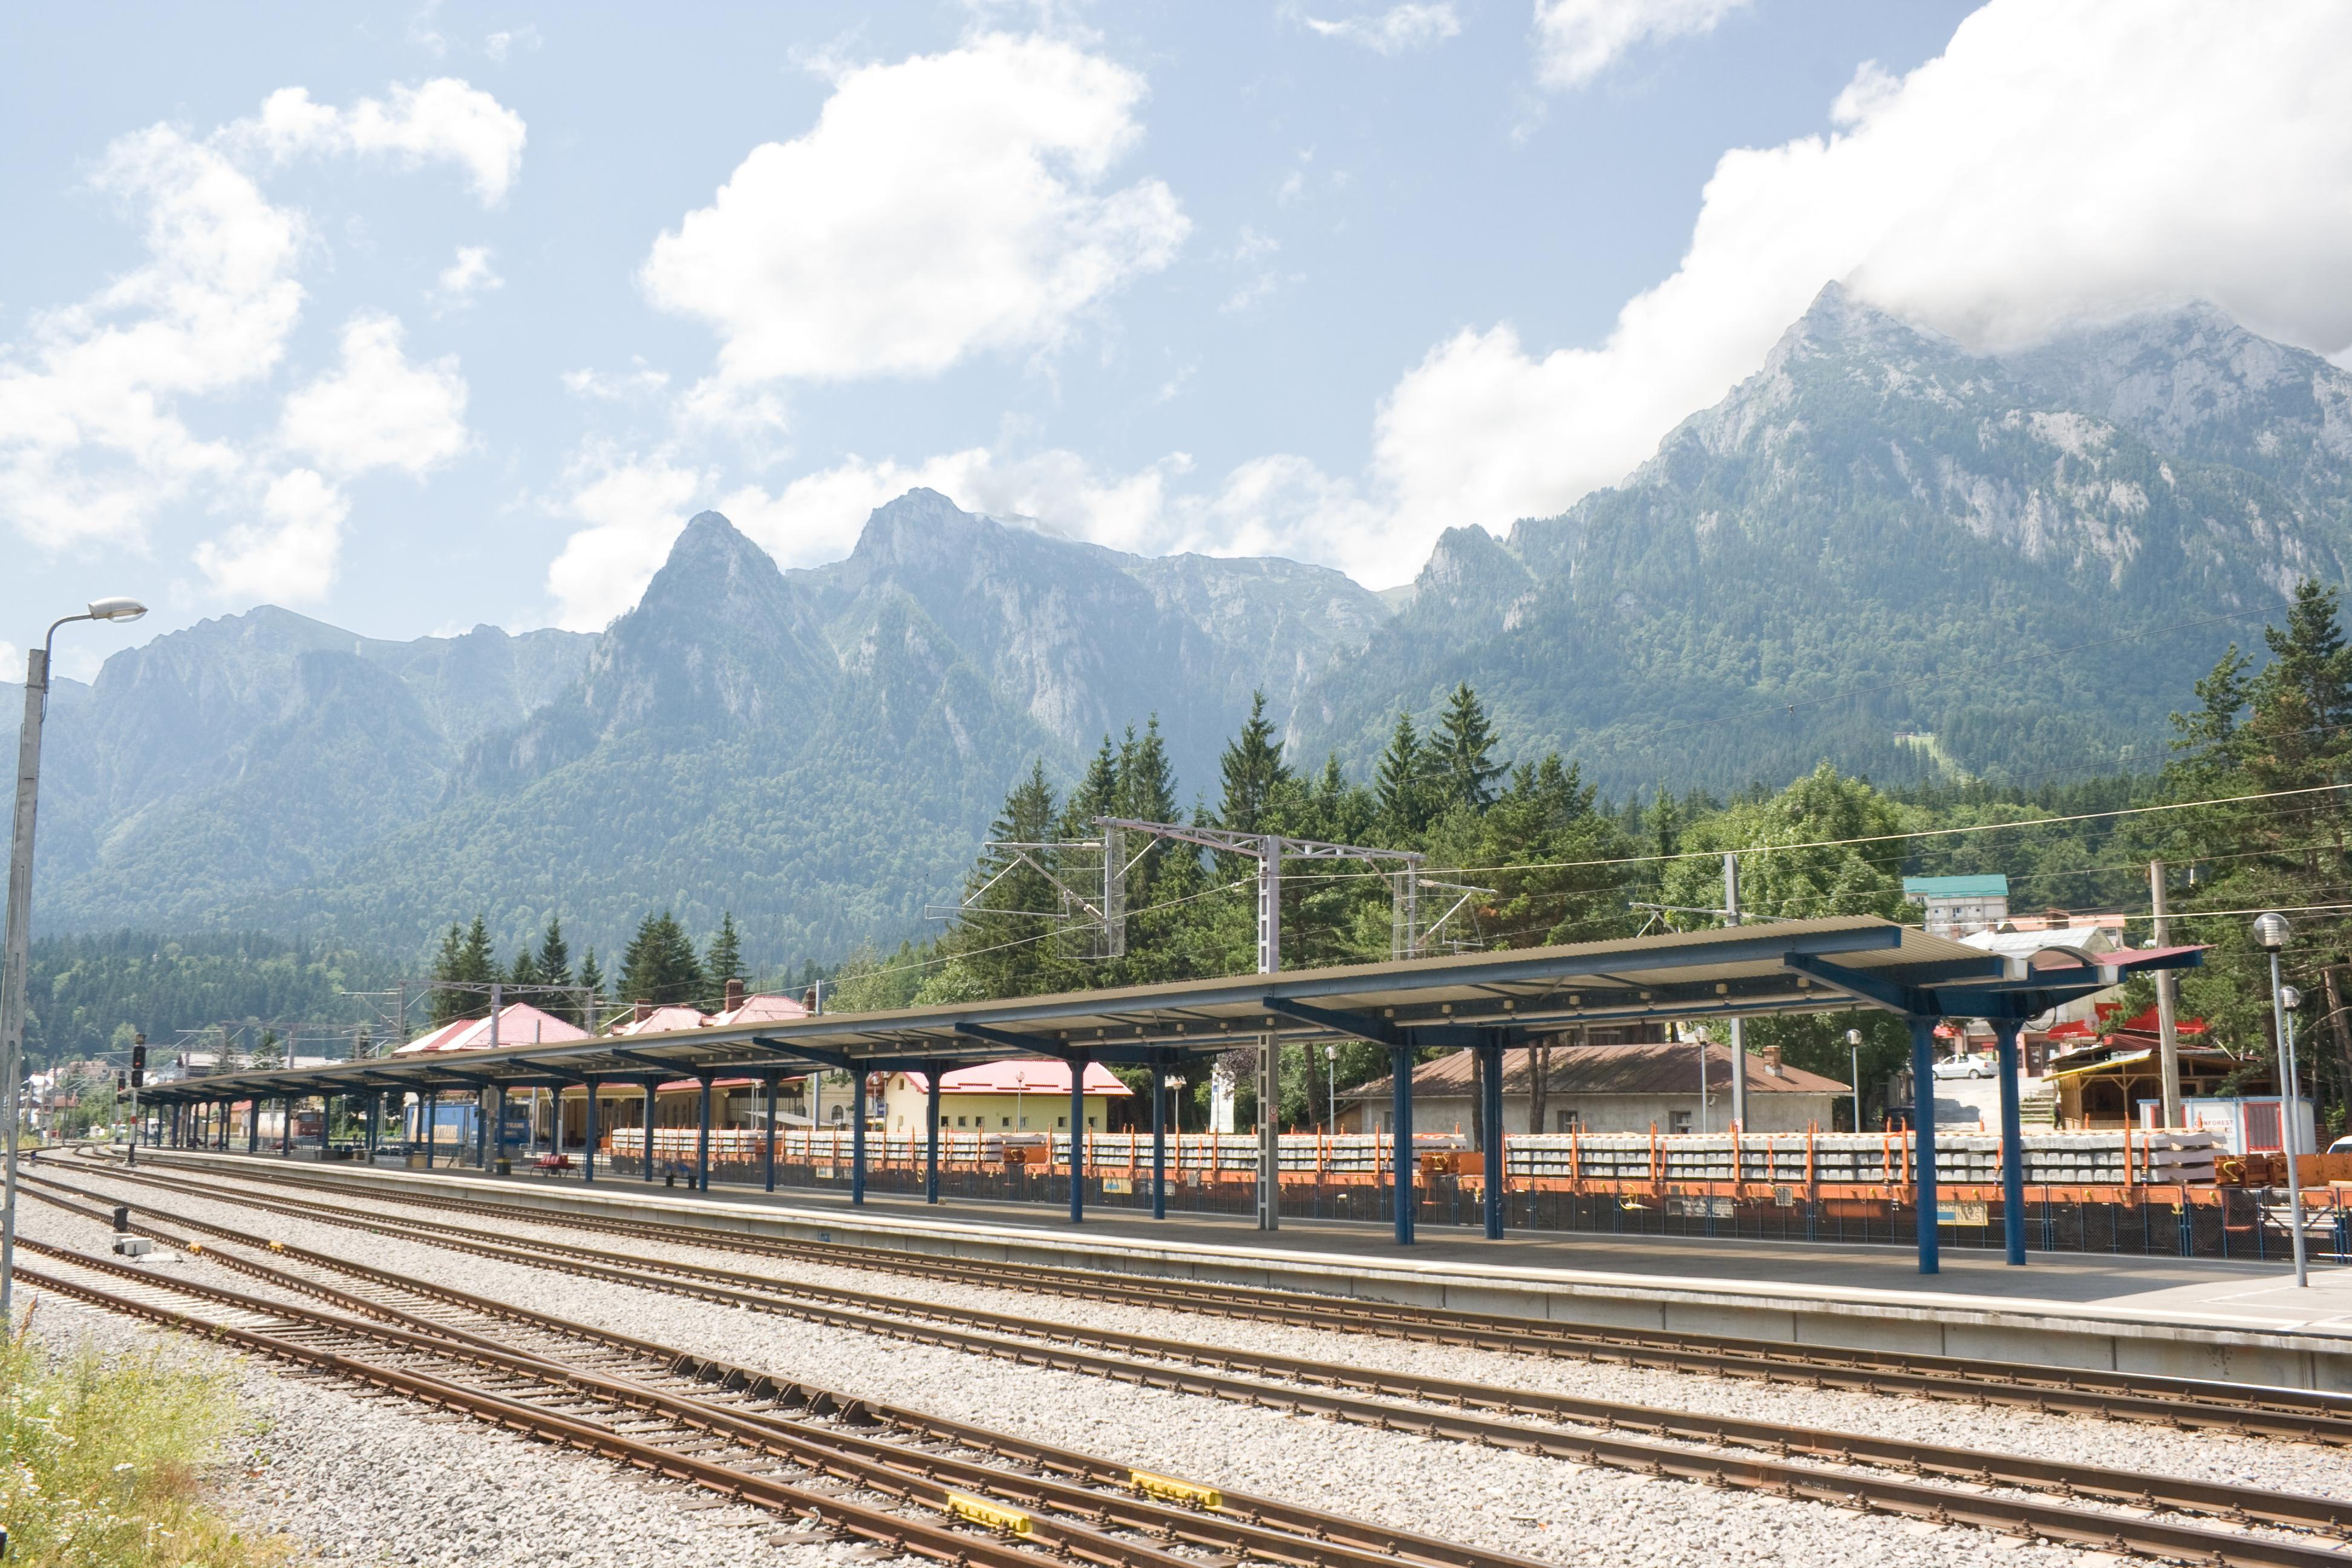 Romania awards contracts to modernise 80km of railway to strengthen European links